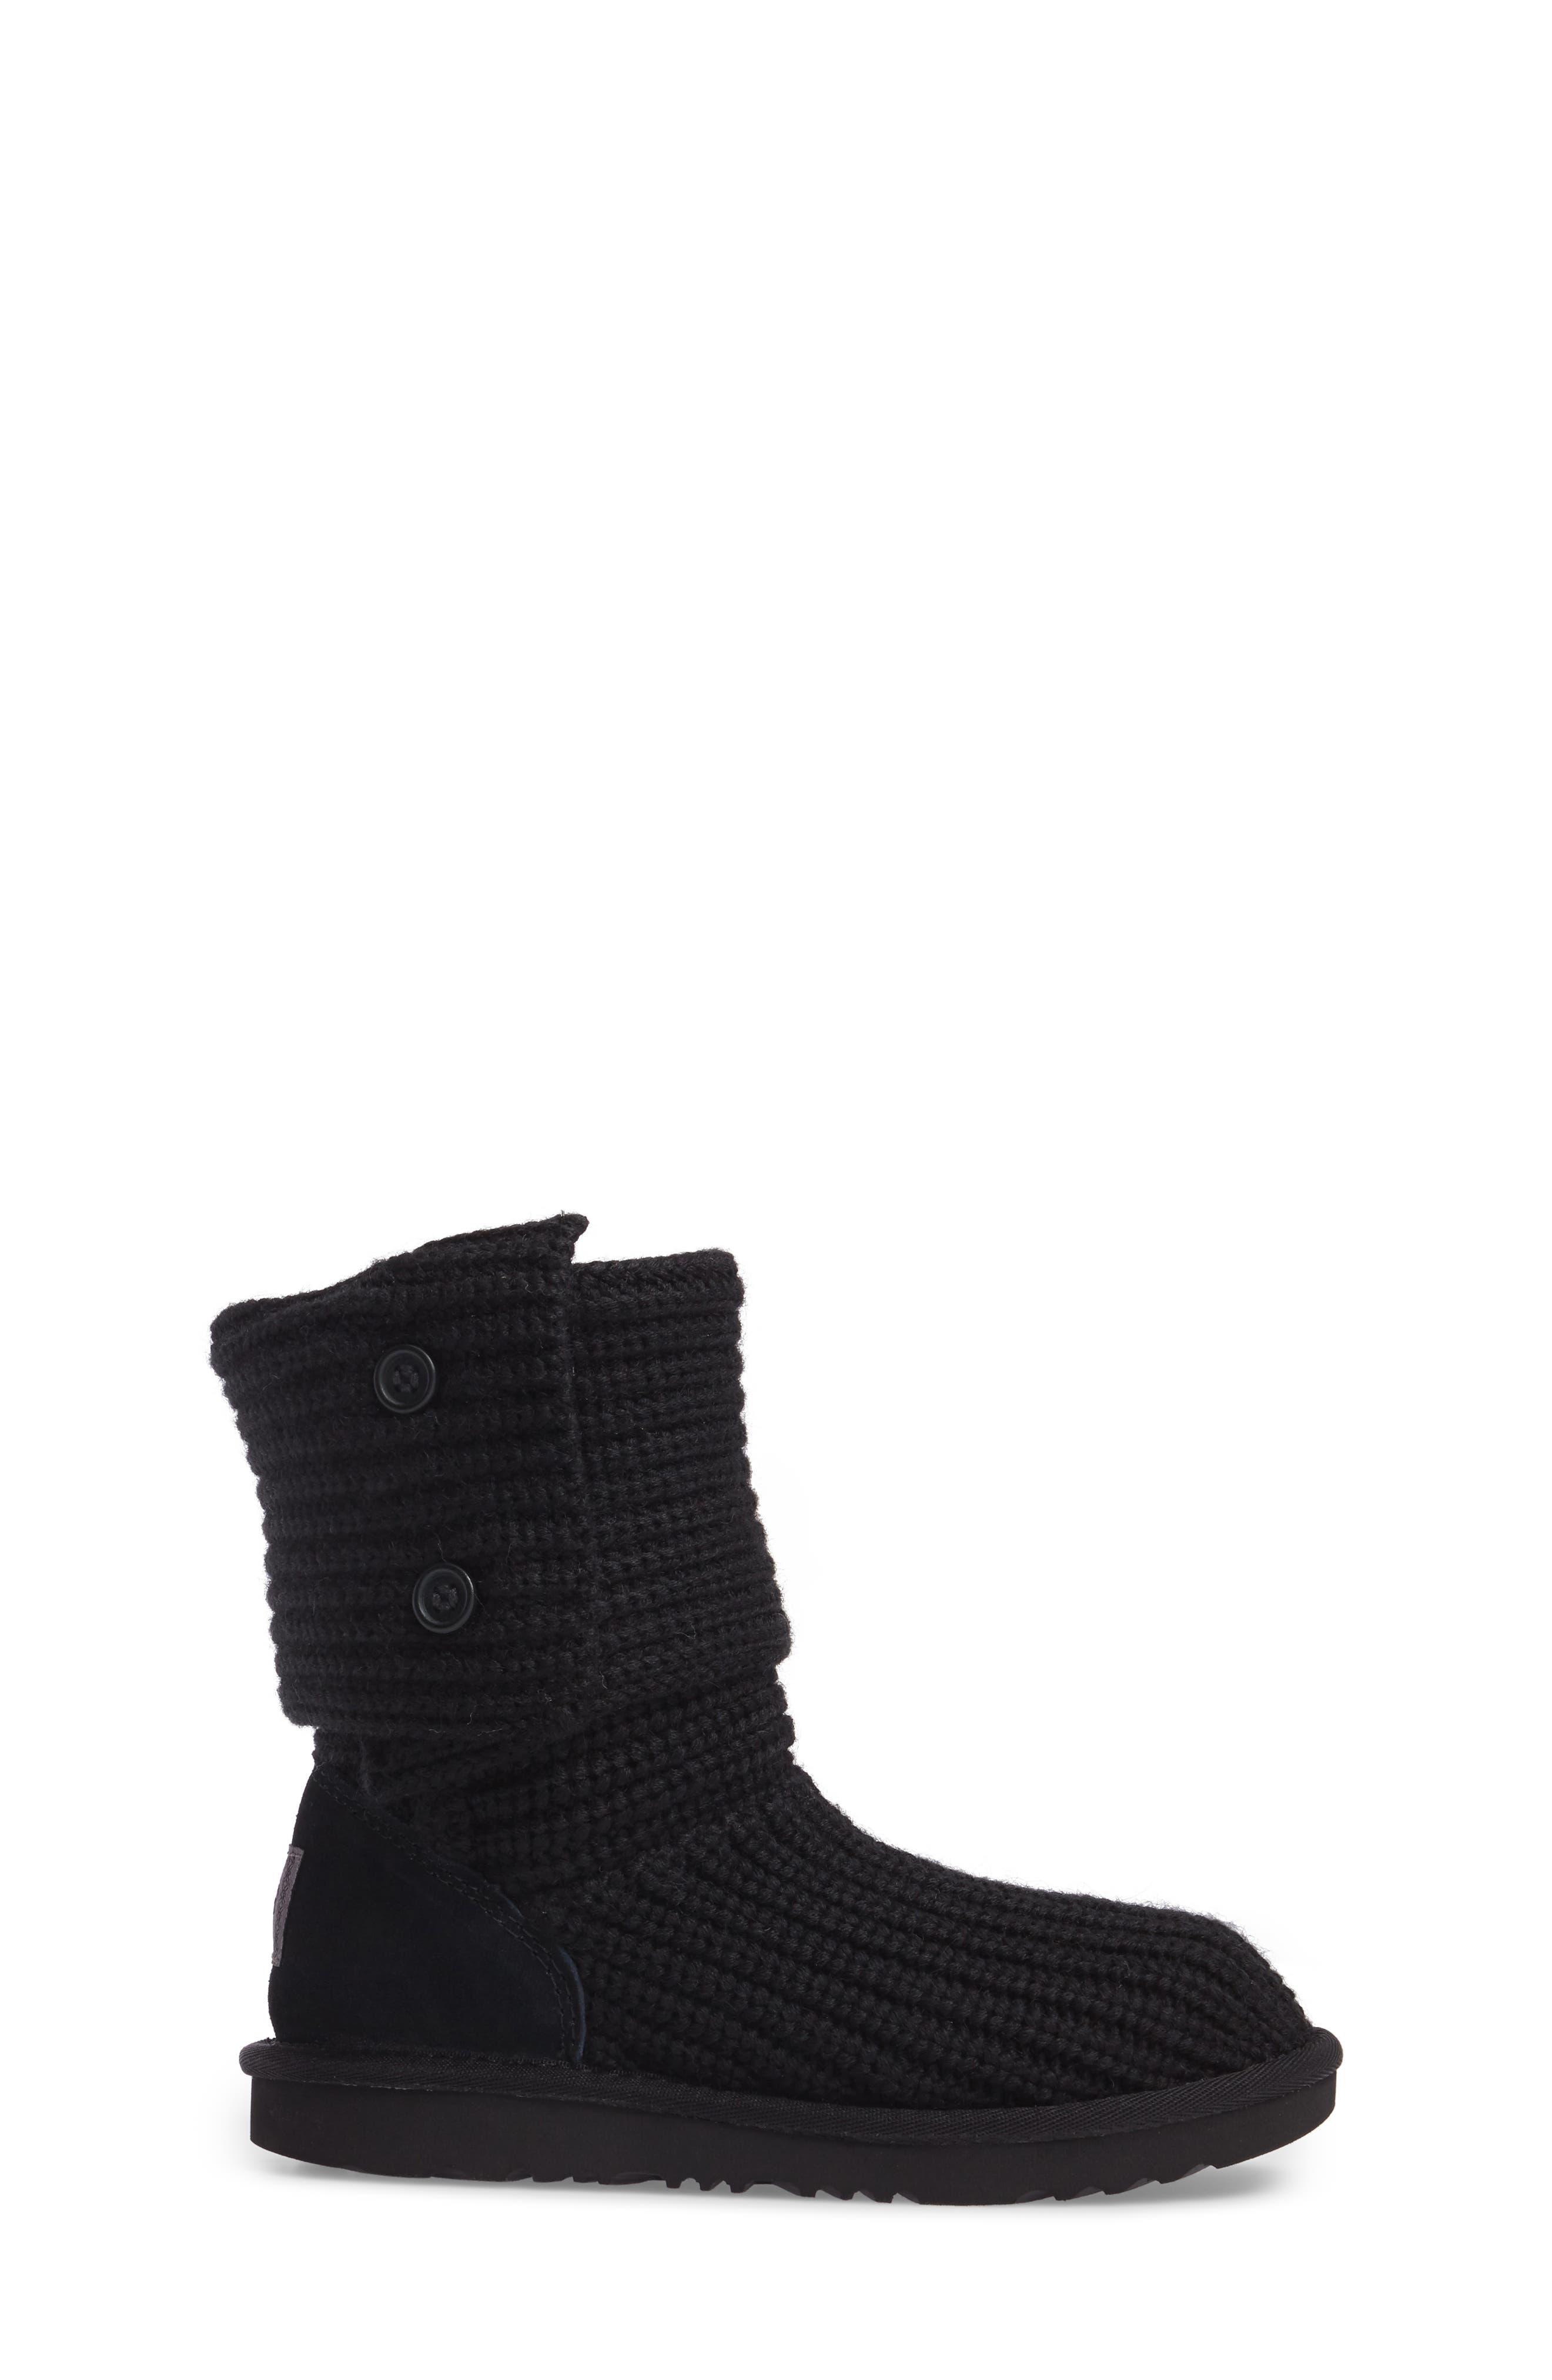 Cardy II Cableknit Bootie,                             Alternate thumbnail 3, color,                             Black